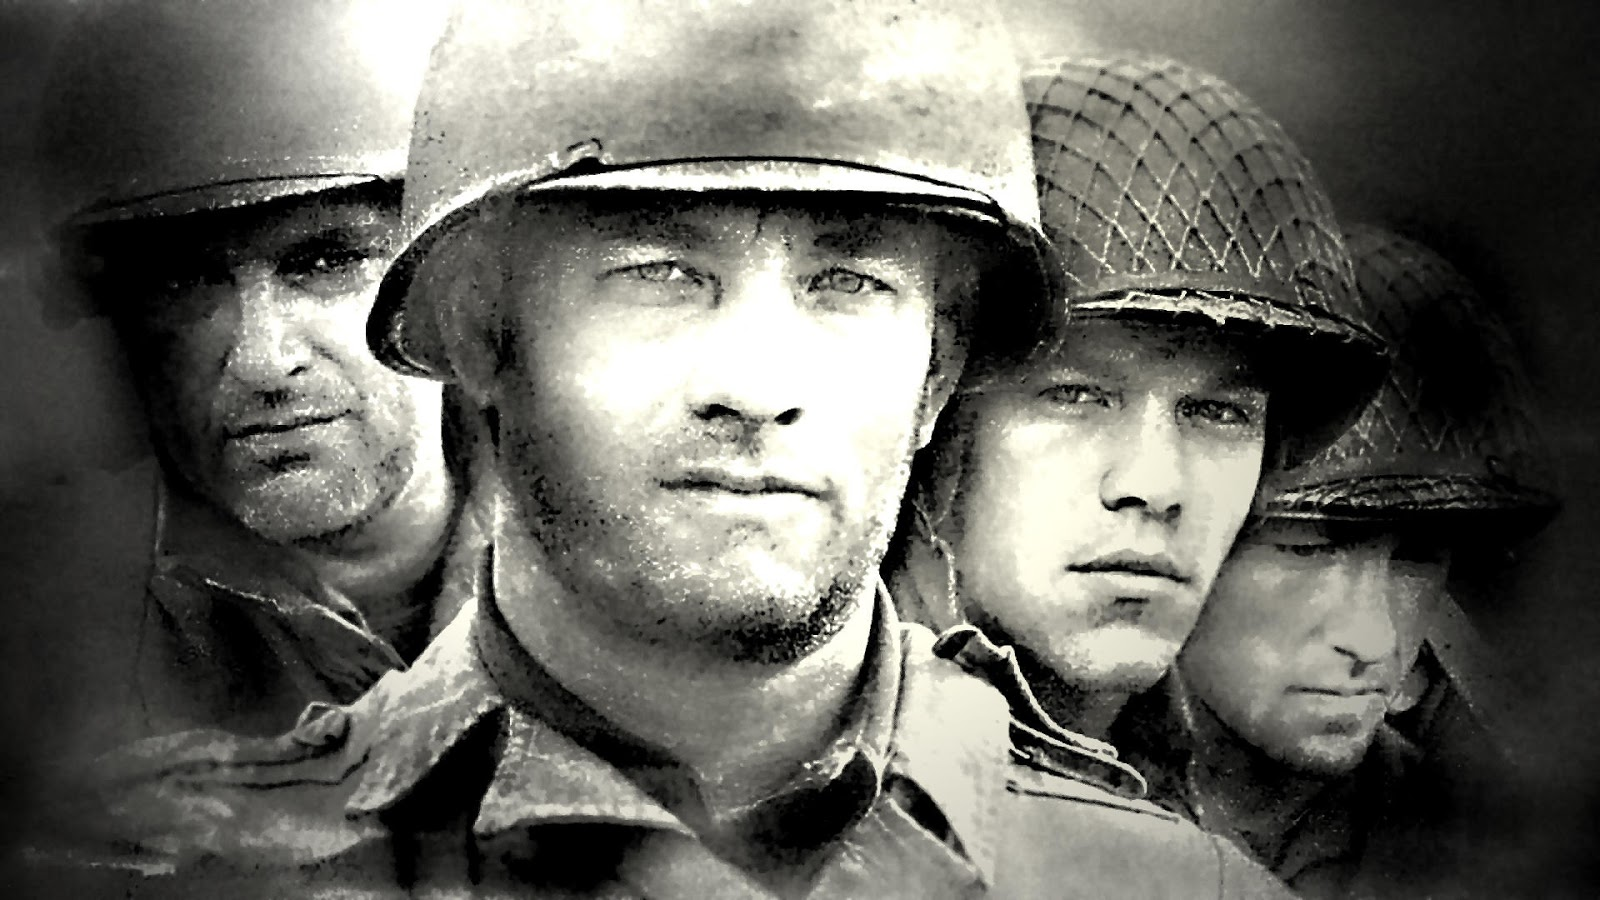 an overview of the movie saving private ryan Plot summary saving private ryan follows the story of several world war ii  soldiers who are on a quest to find one man who is fighting somewhere else in.